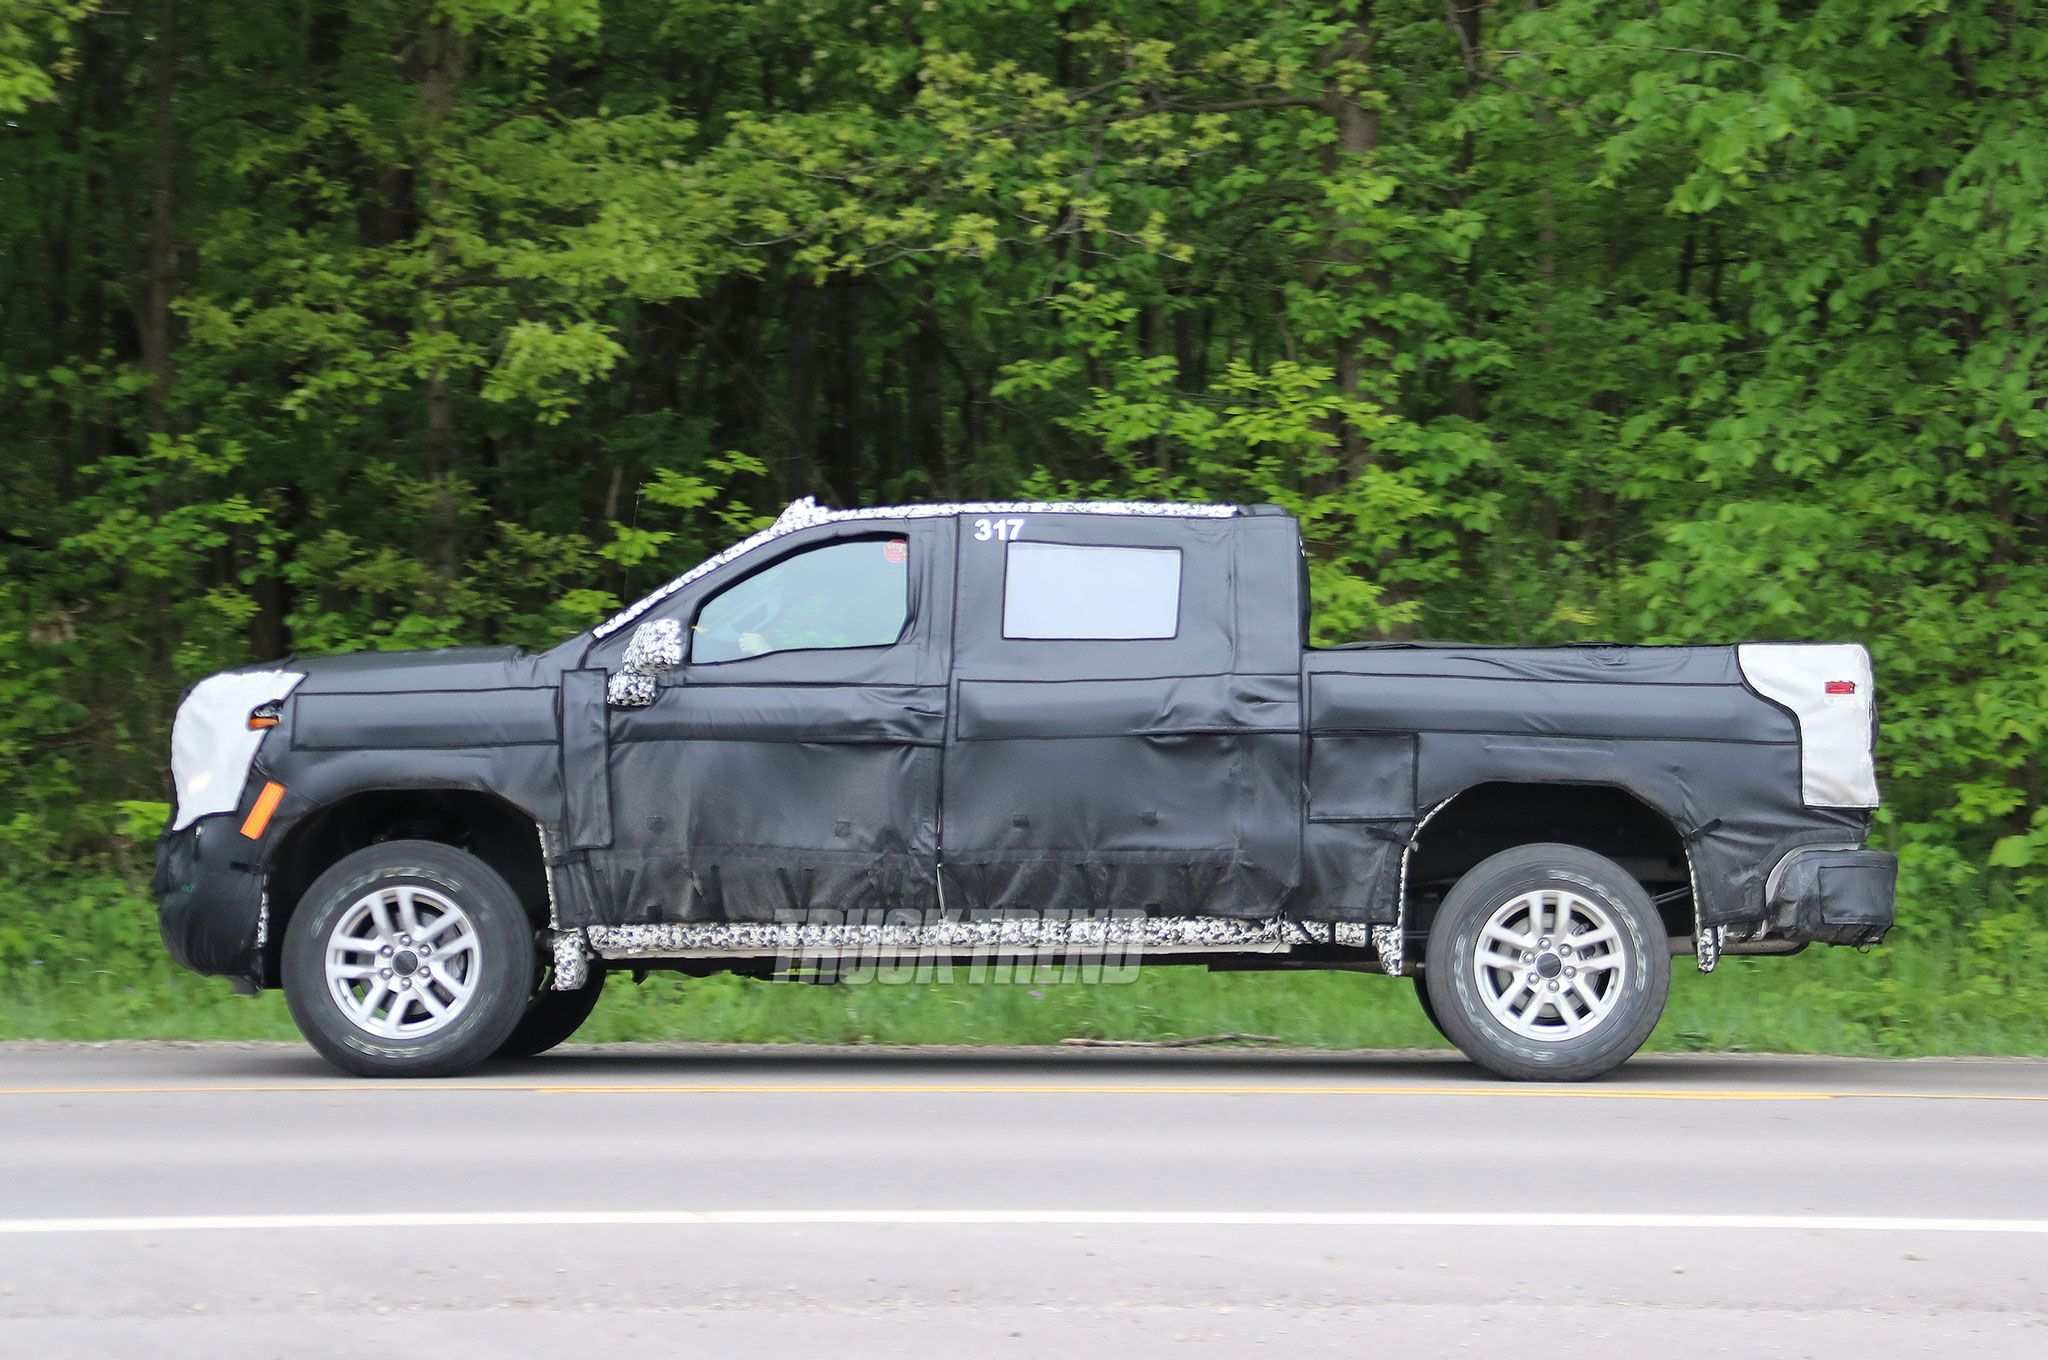 12 Gallery of 2019 Chevrolet Silverado Spy Photos Price and Review with 2019 Chevrolet Silverado Spy Photos